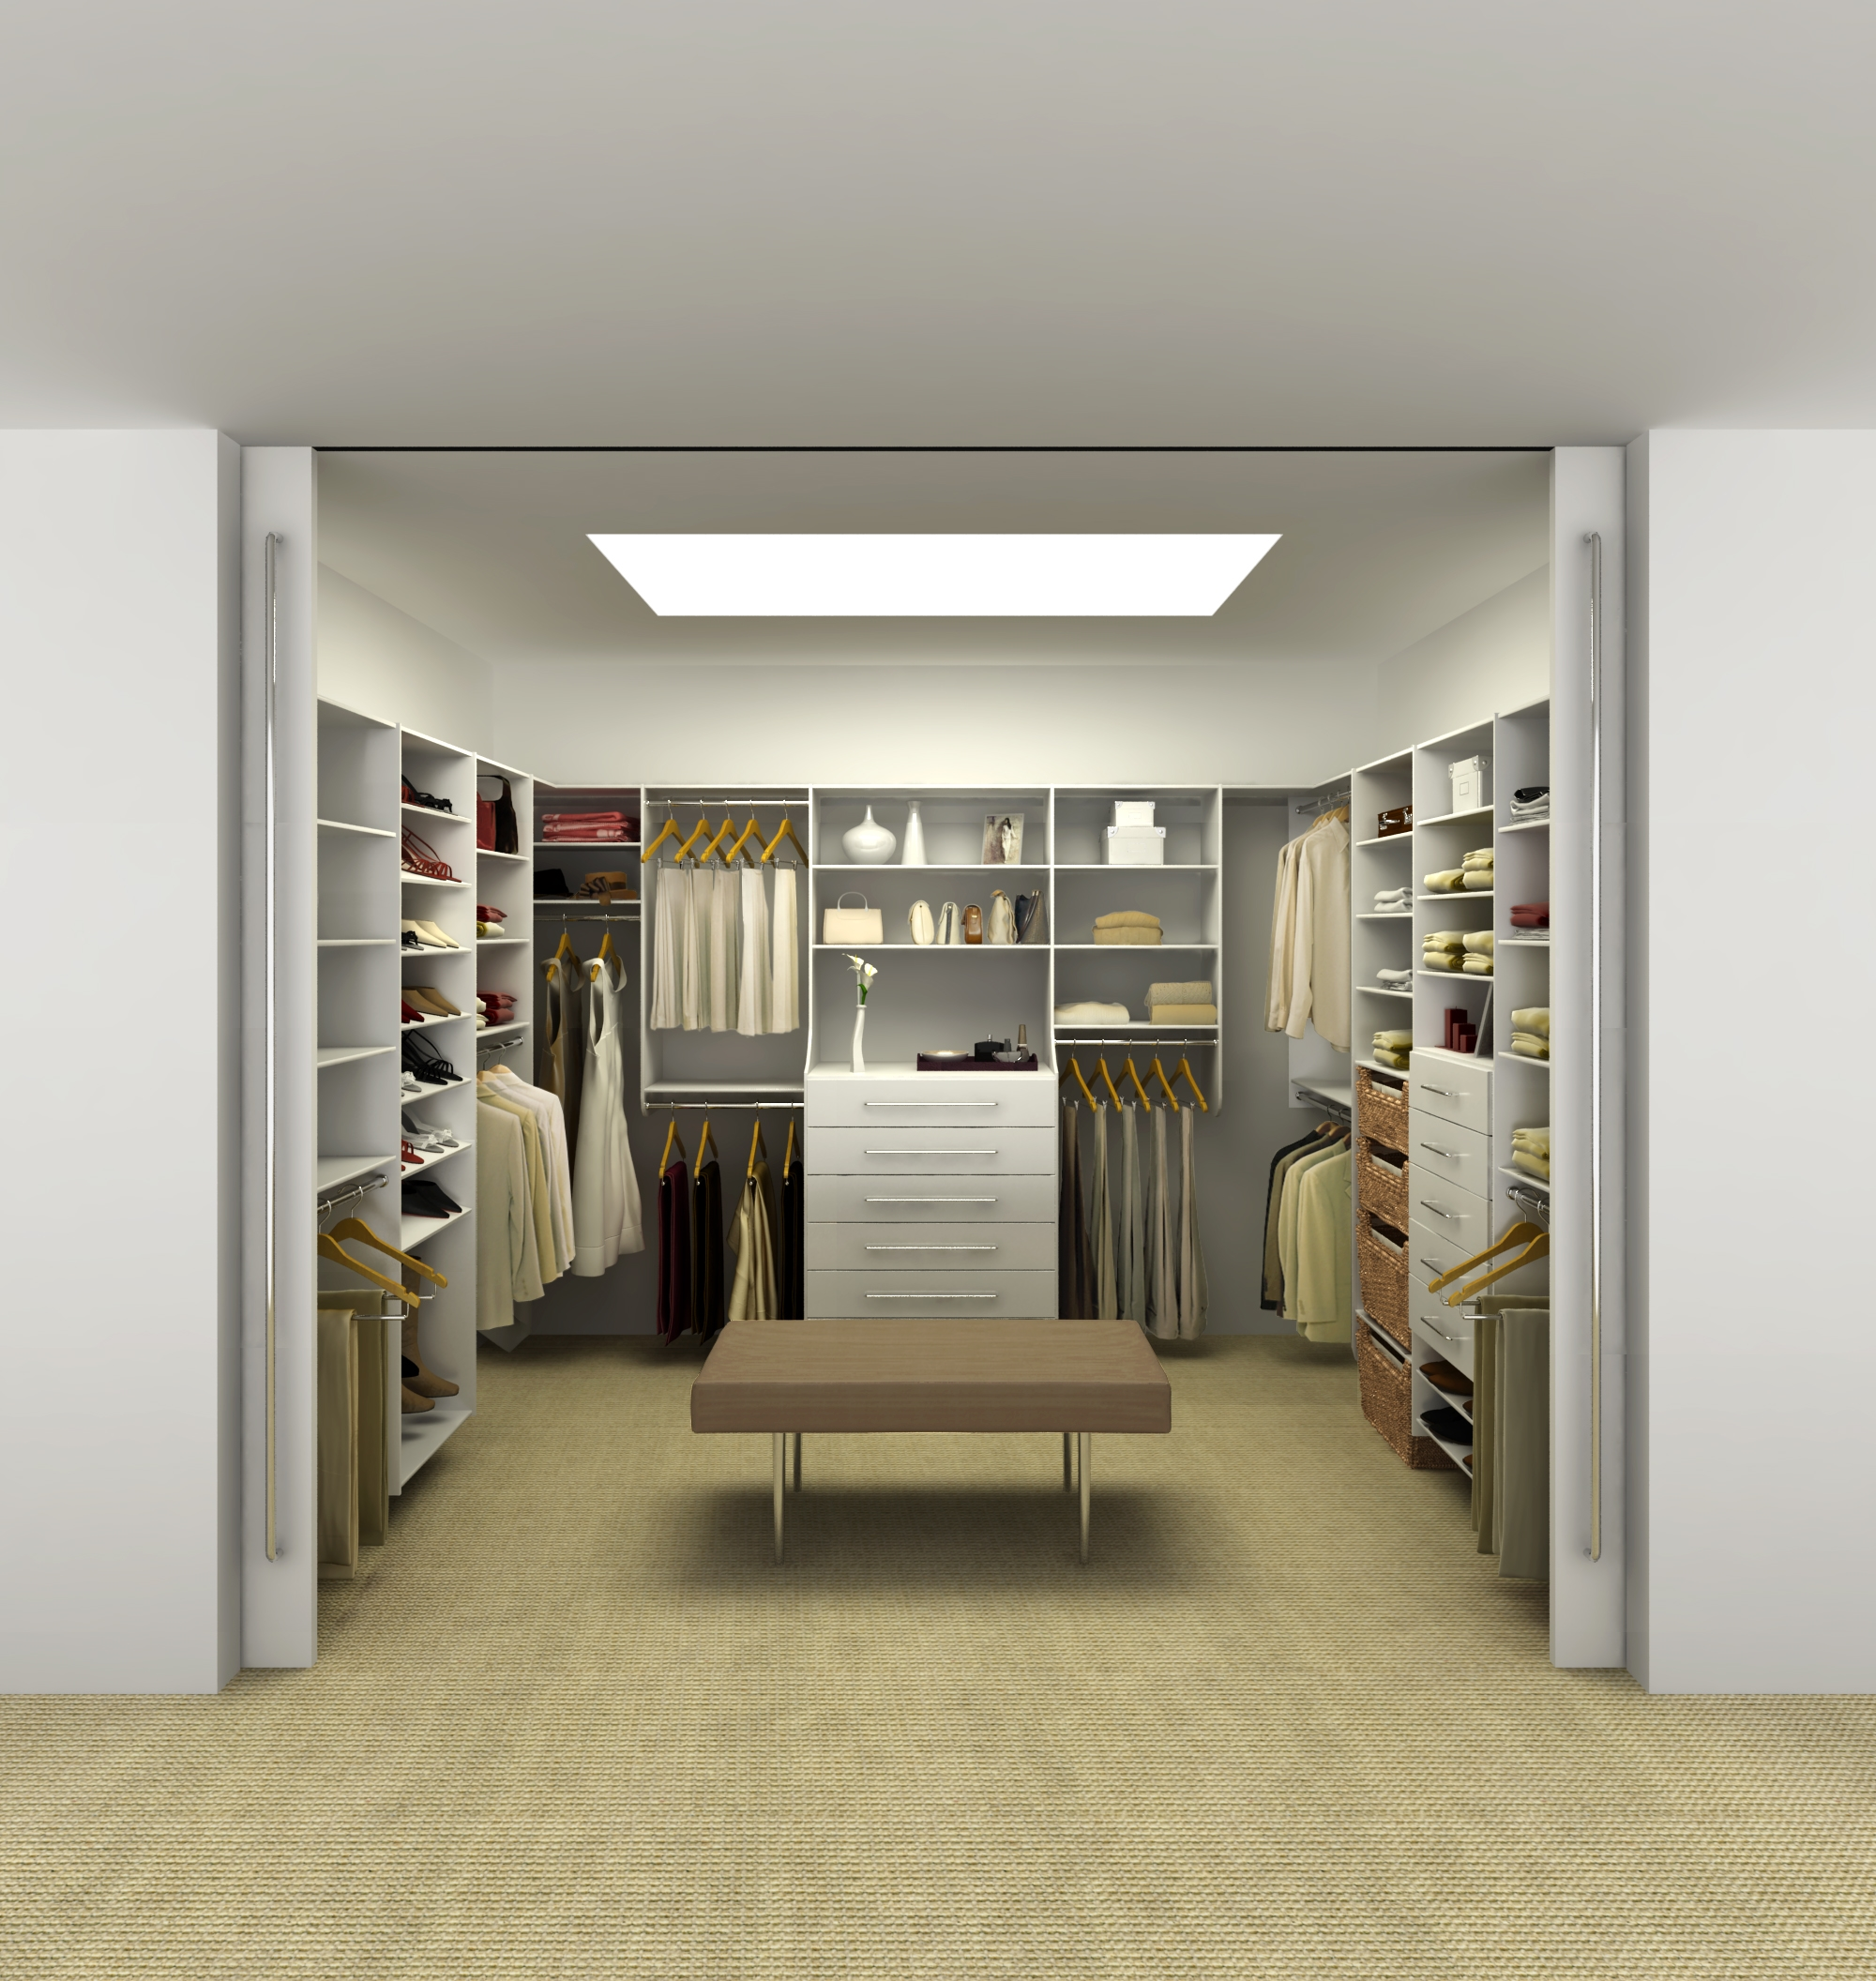 Vestidores A Medida En Madrid Metrocloset Interiors Inside Ideas Interiors design about Everything [magnanprojects.com]